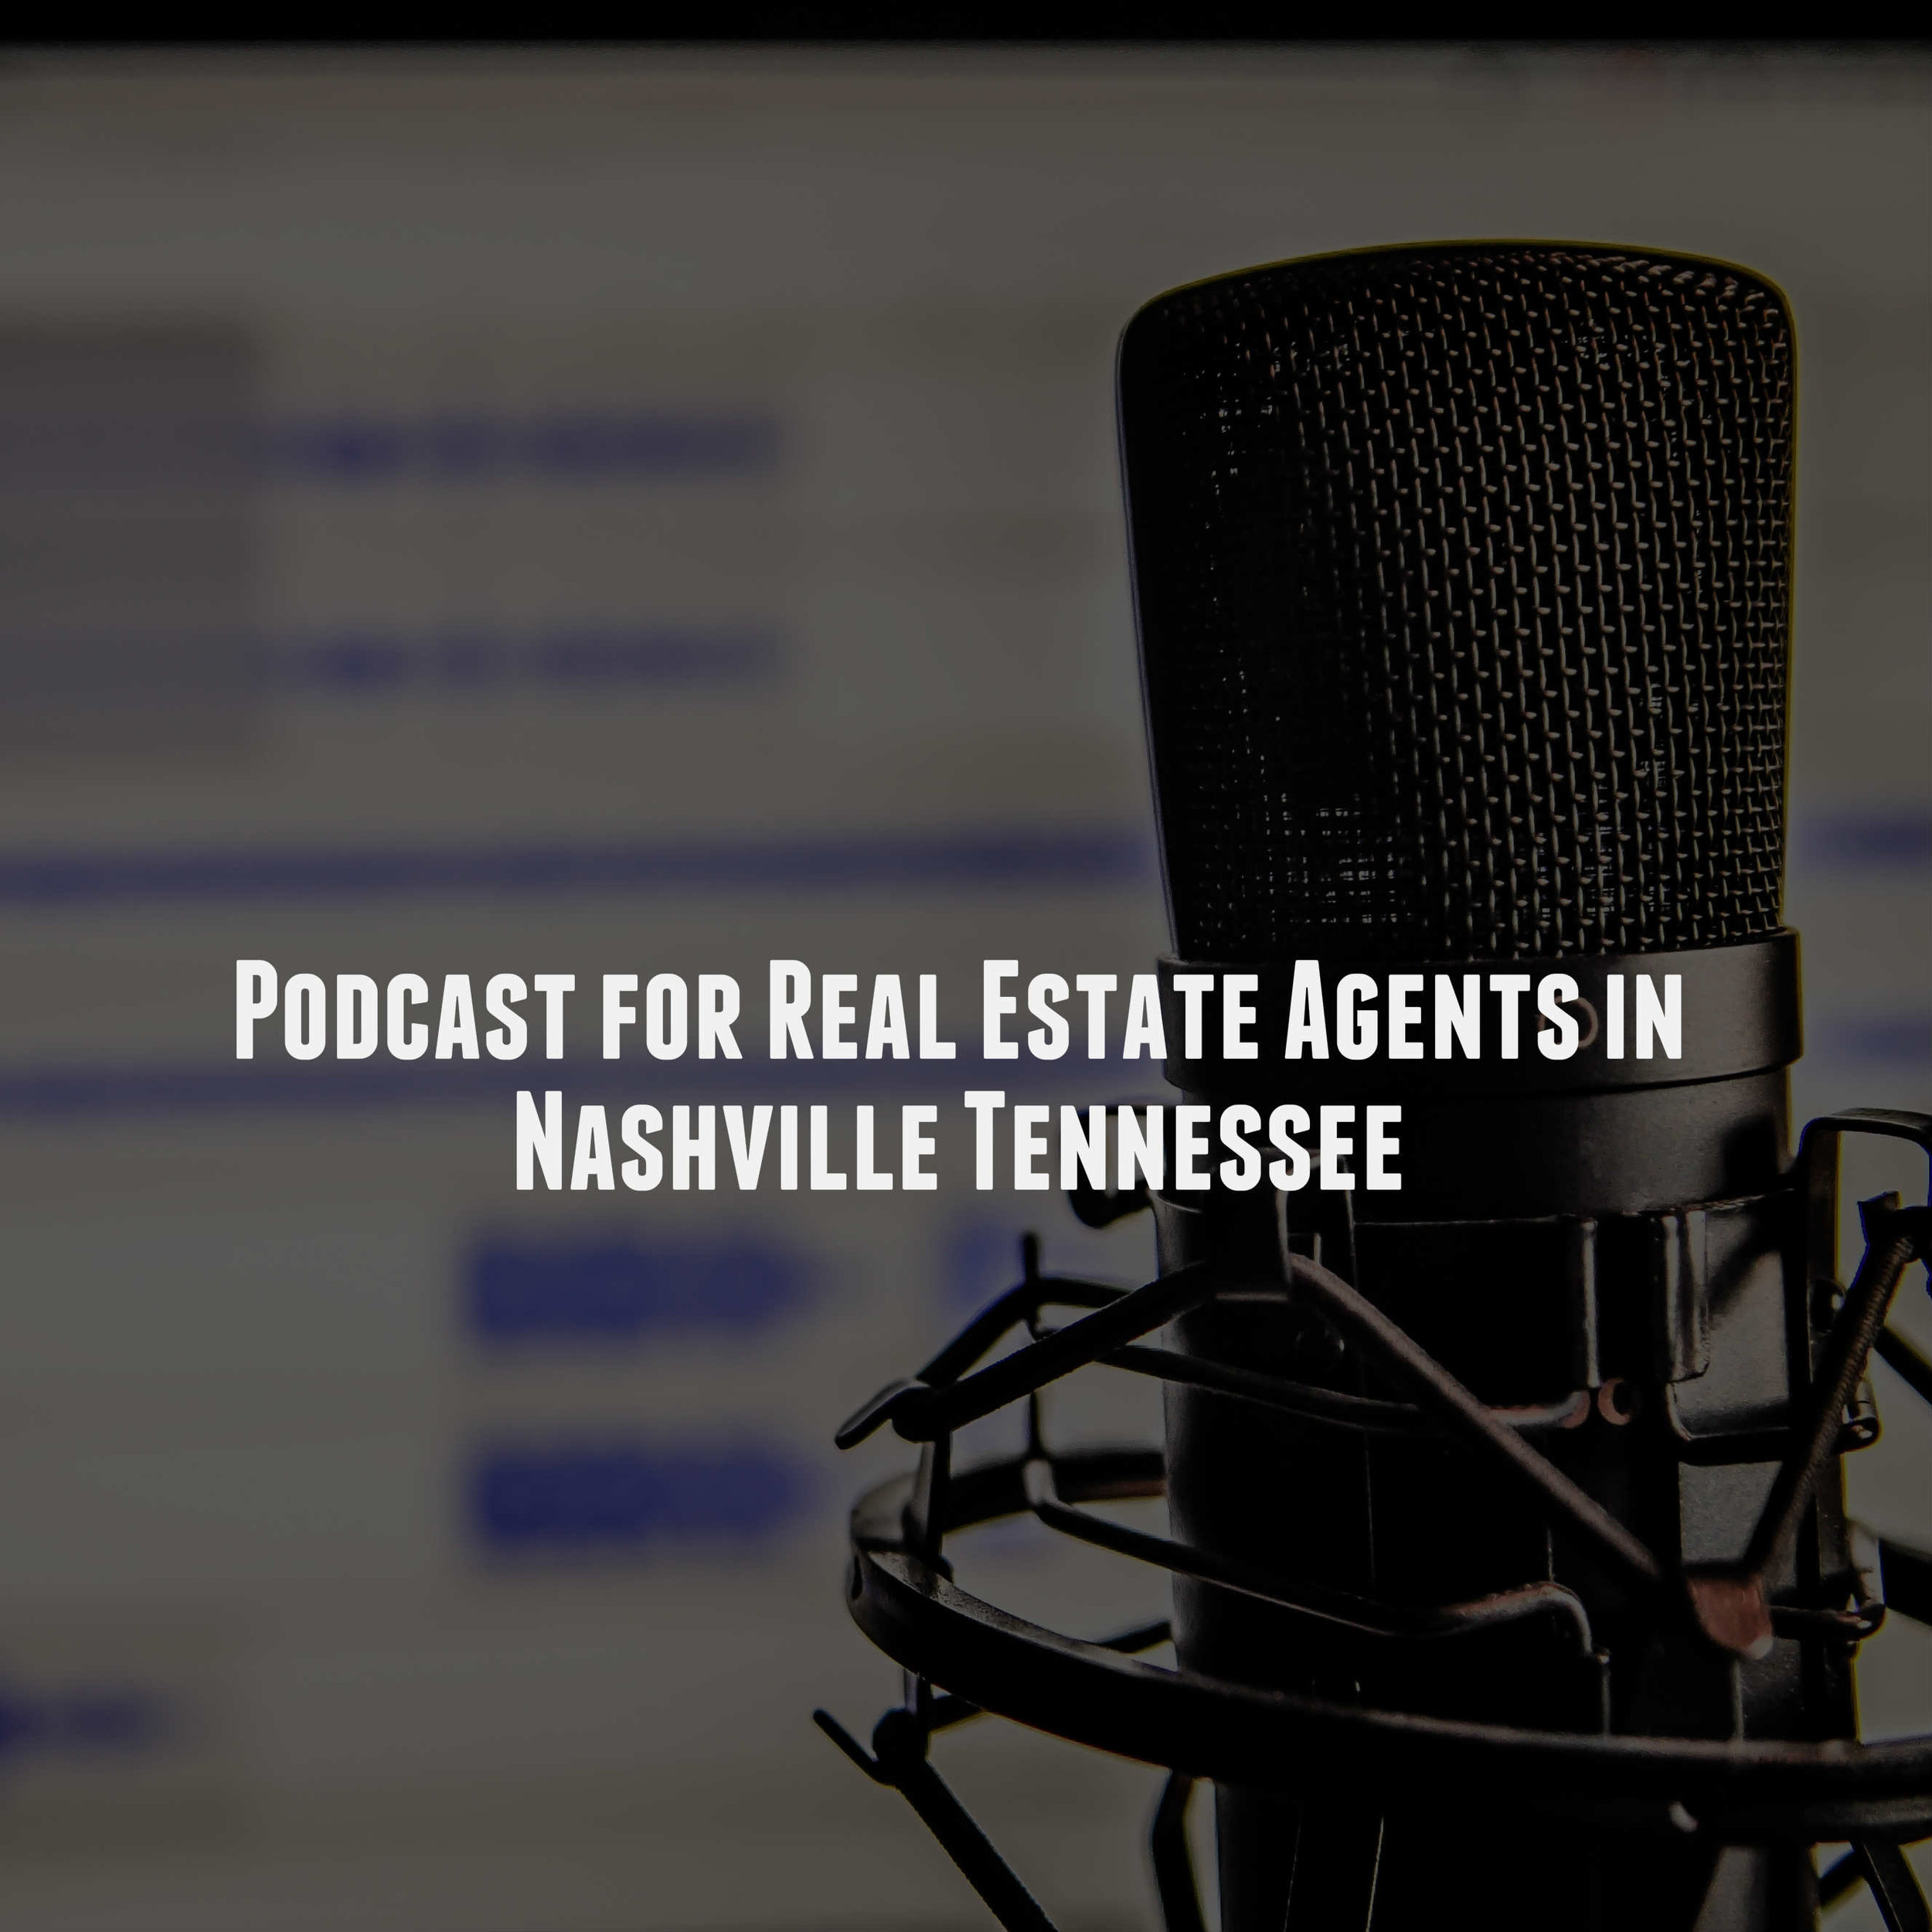 Podcast for Real Estate Agents in Nashville Tennessee